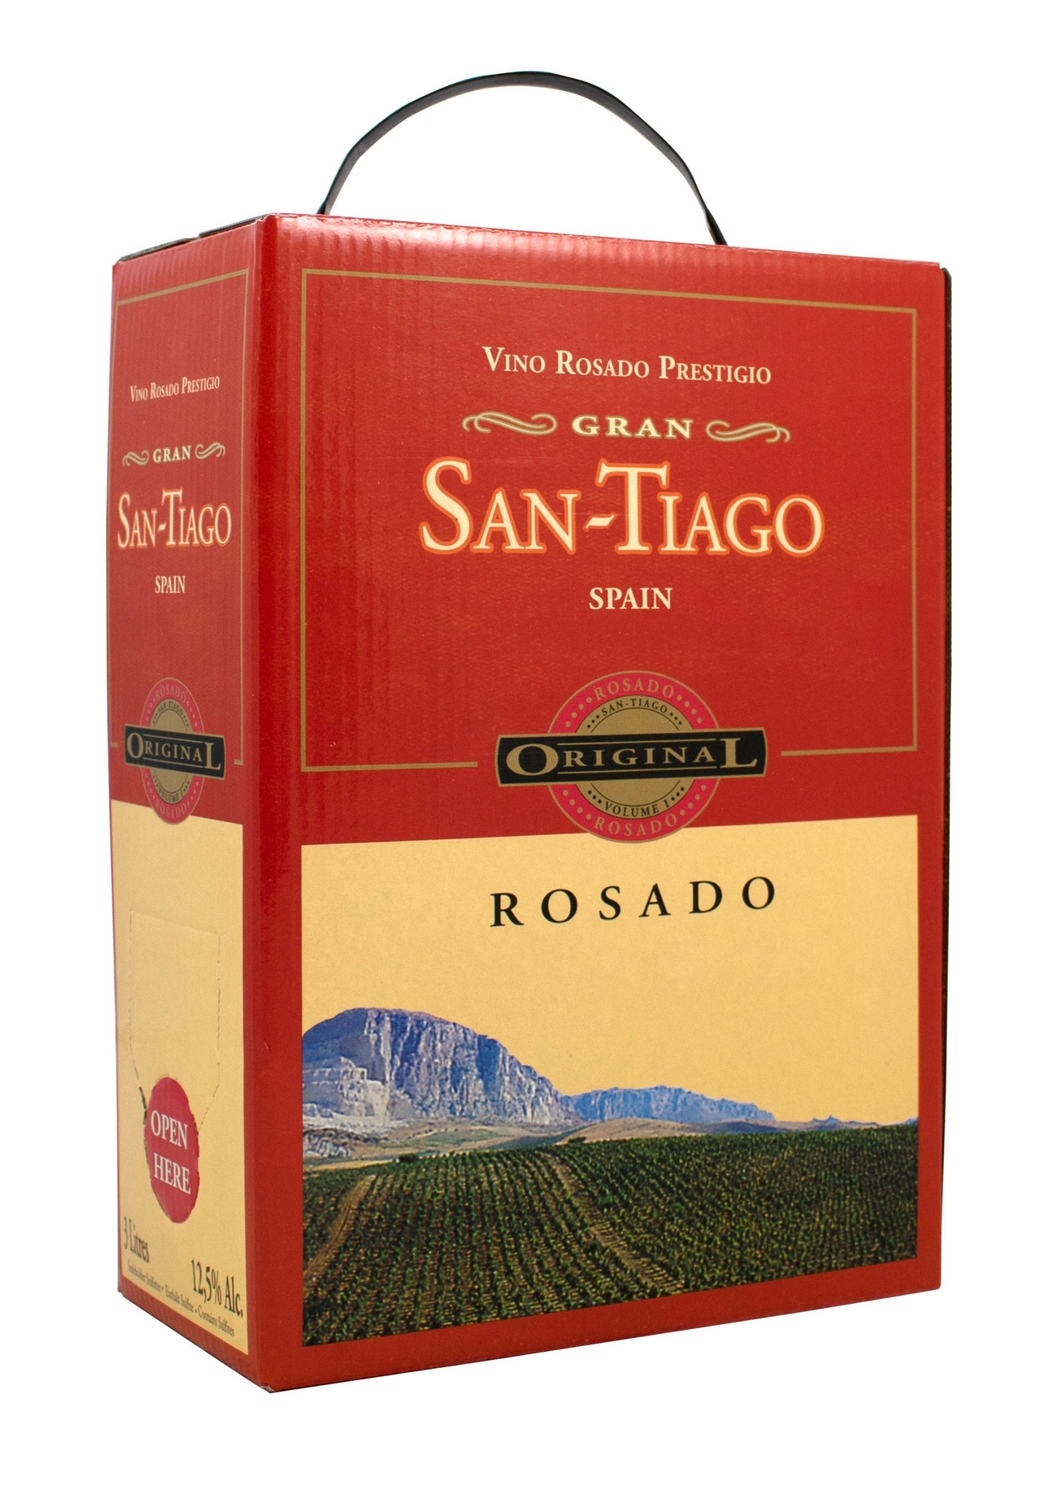 Santiago Rosado 3 Liter Bag In Box